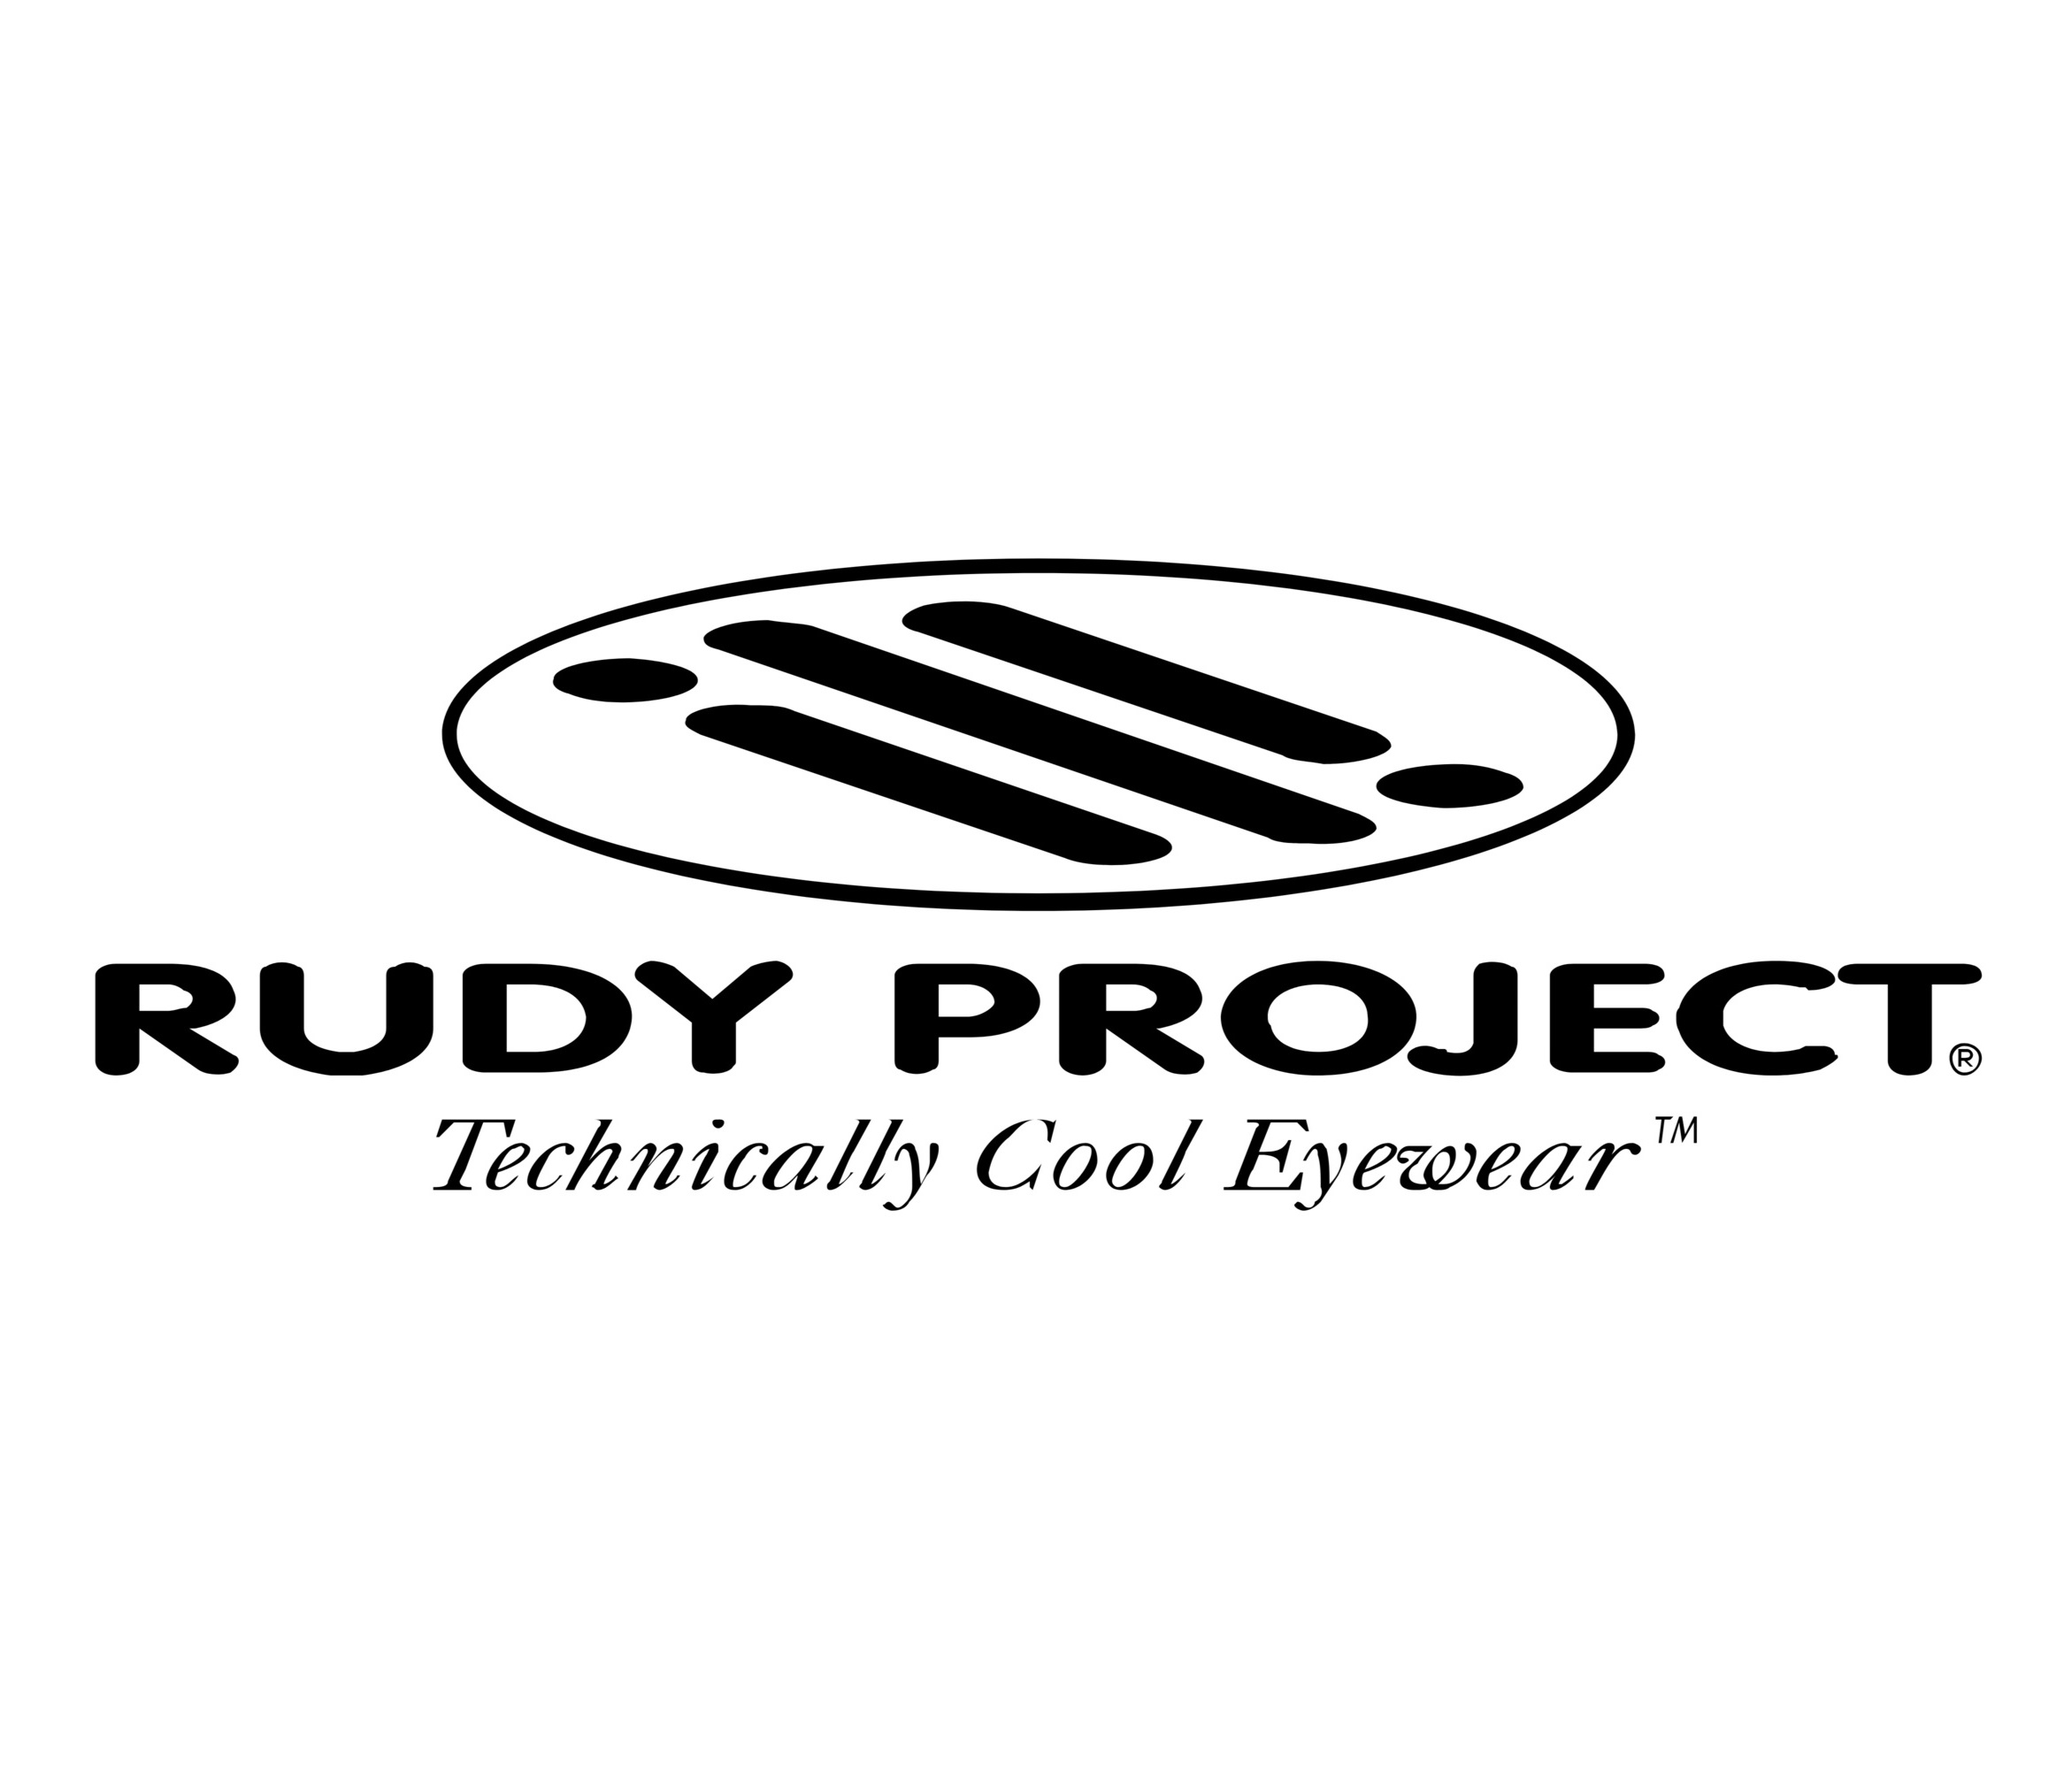 RUDY PROJECT   In 1985 Rudy Barbazza created Rudy Project in Treviso, Italy with a firm conviction to improve the performance of athletes all over the world. A love of progress, a passion for style and a keen eye for quality all contributed to give life to his vision: the world's most technologically advanced sports eyewear. Rudy Project never stops researching to find the most advanced materials to develop products that elevate your performance. Technically Cool: the two words that best sum up this vision; the two words that best express the DNA of each and every design carrying the name Rudy Project.